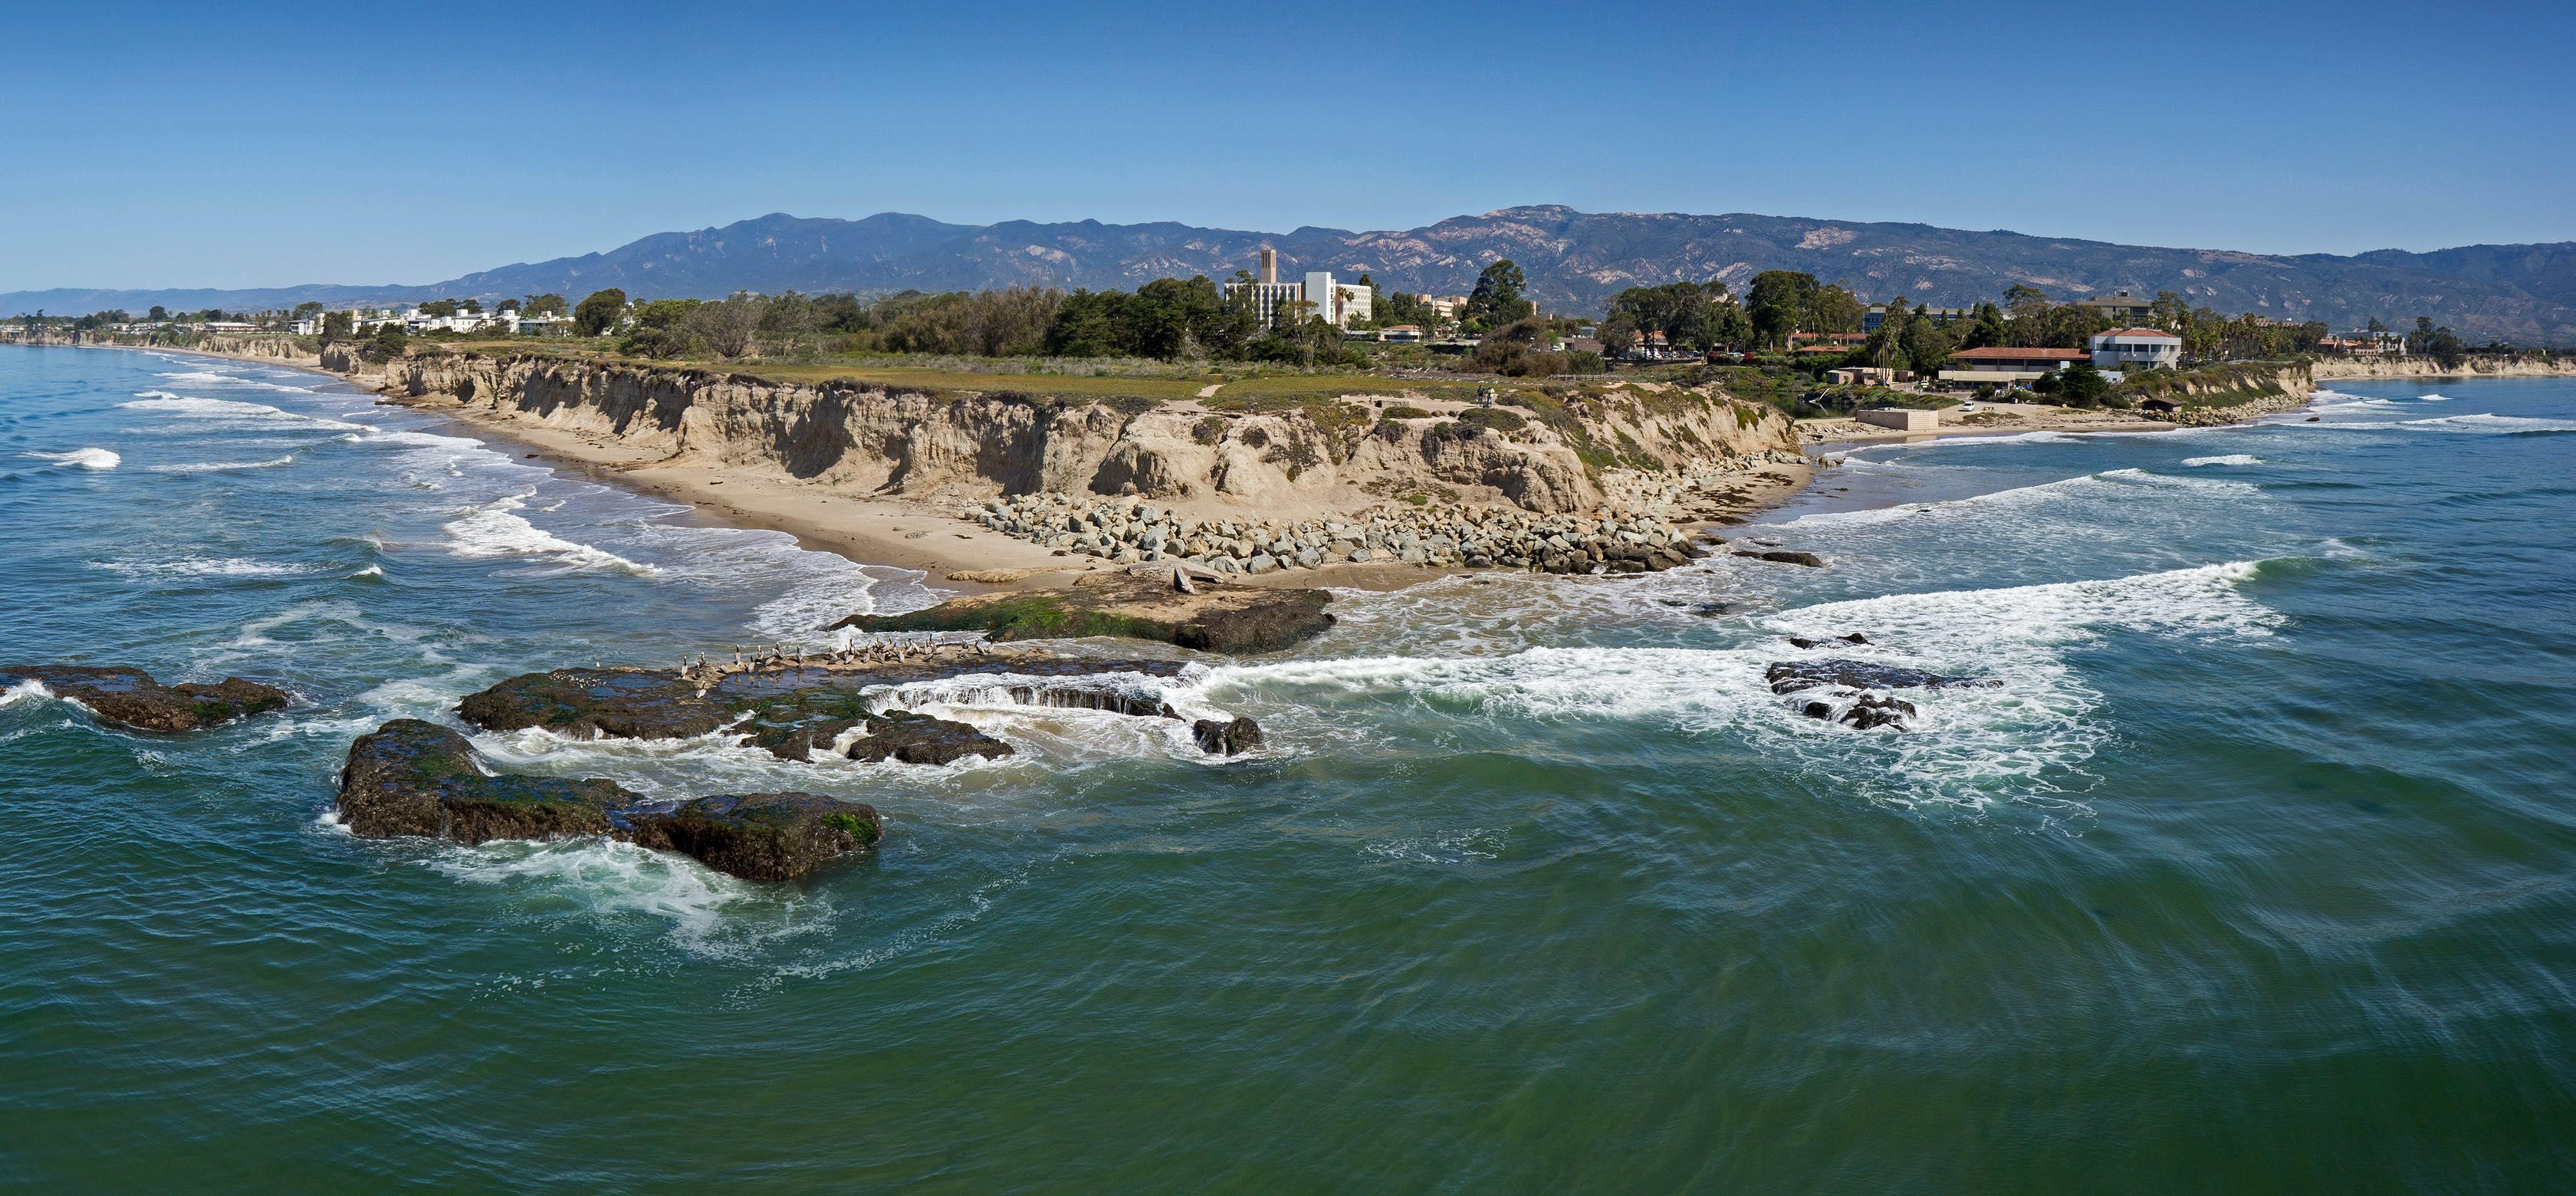 Study by the Beach: International Programs at UC Santa Barbara